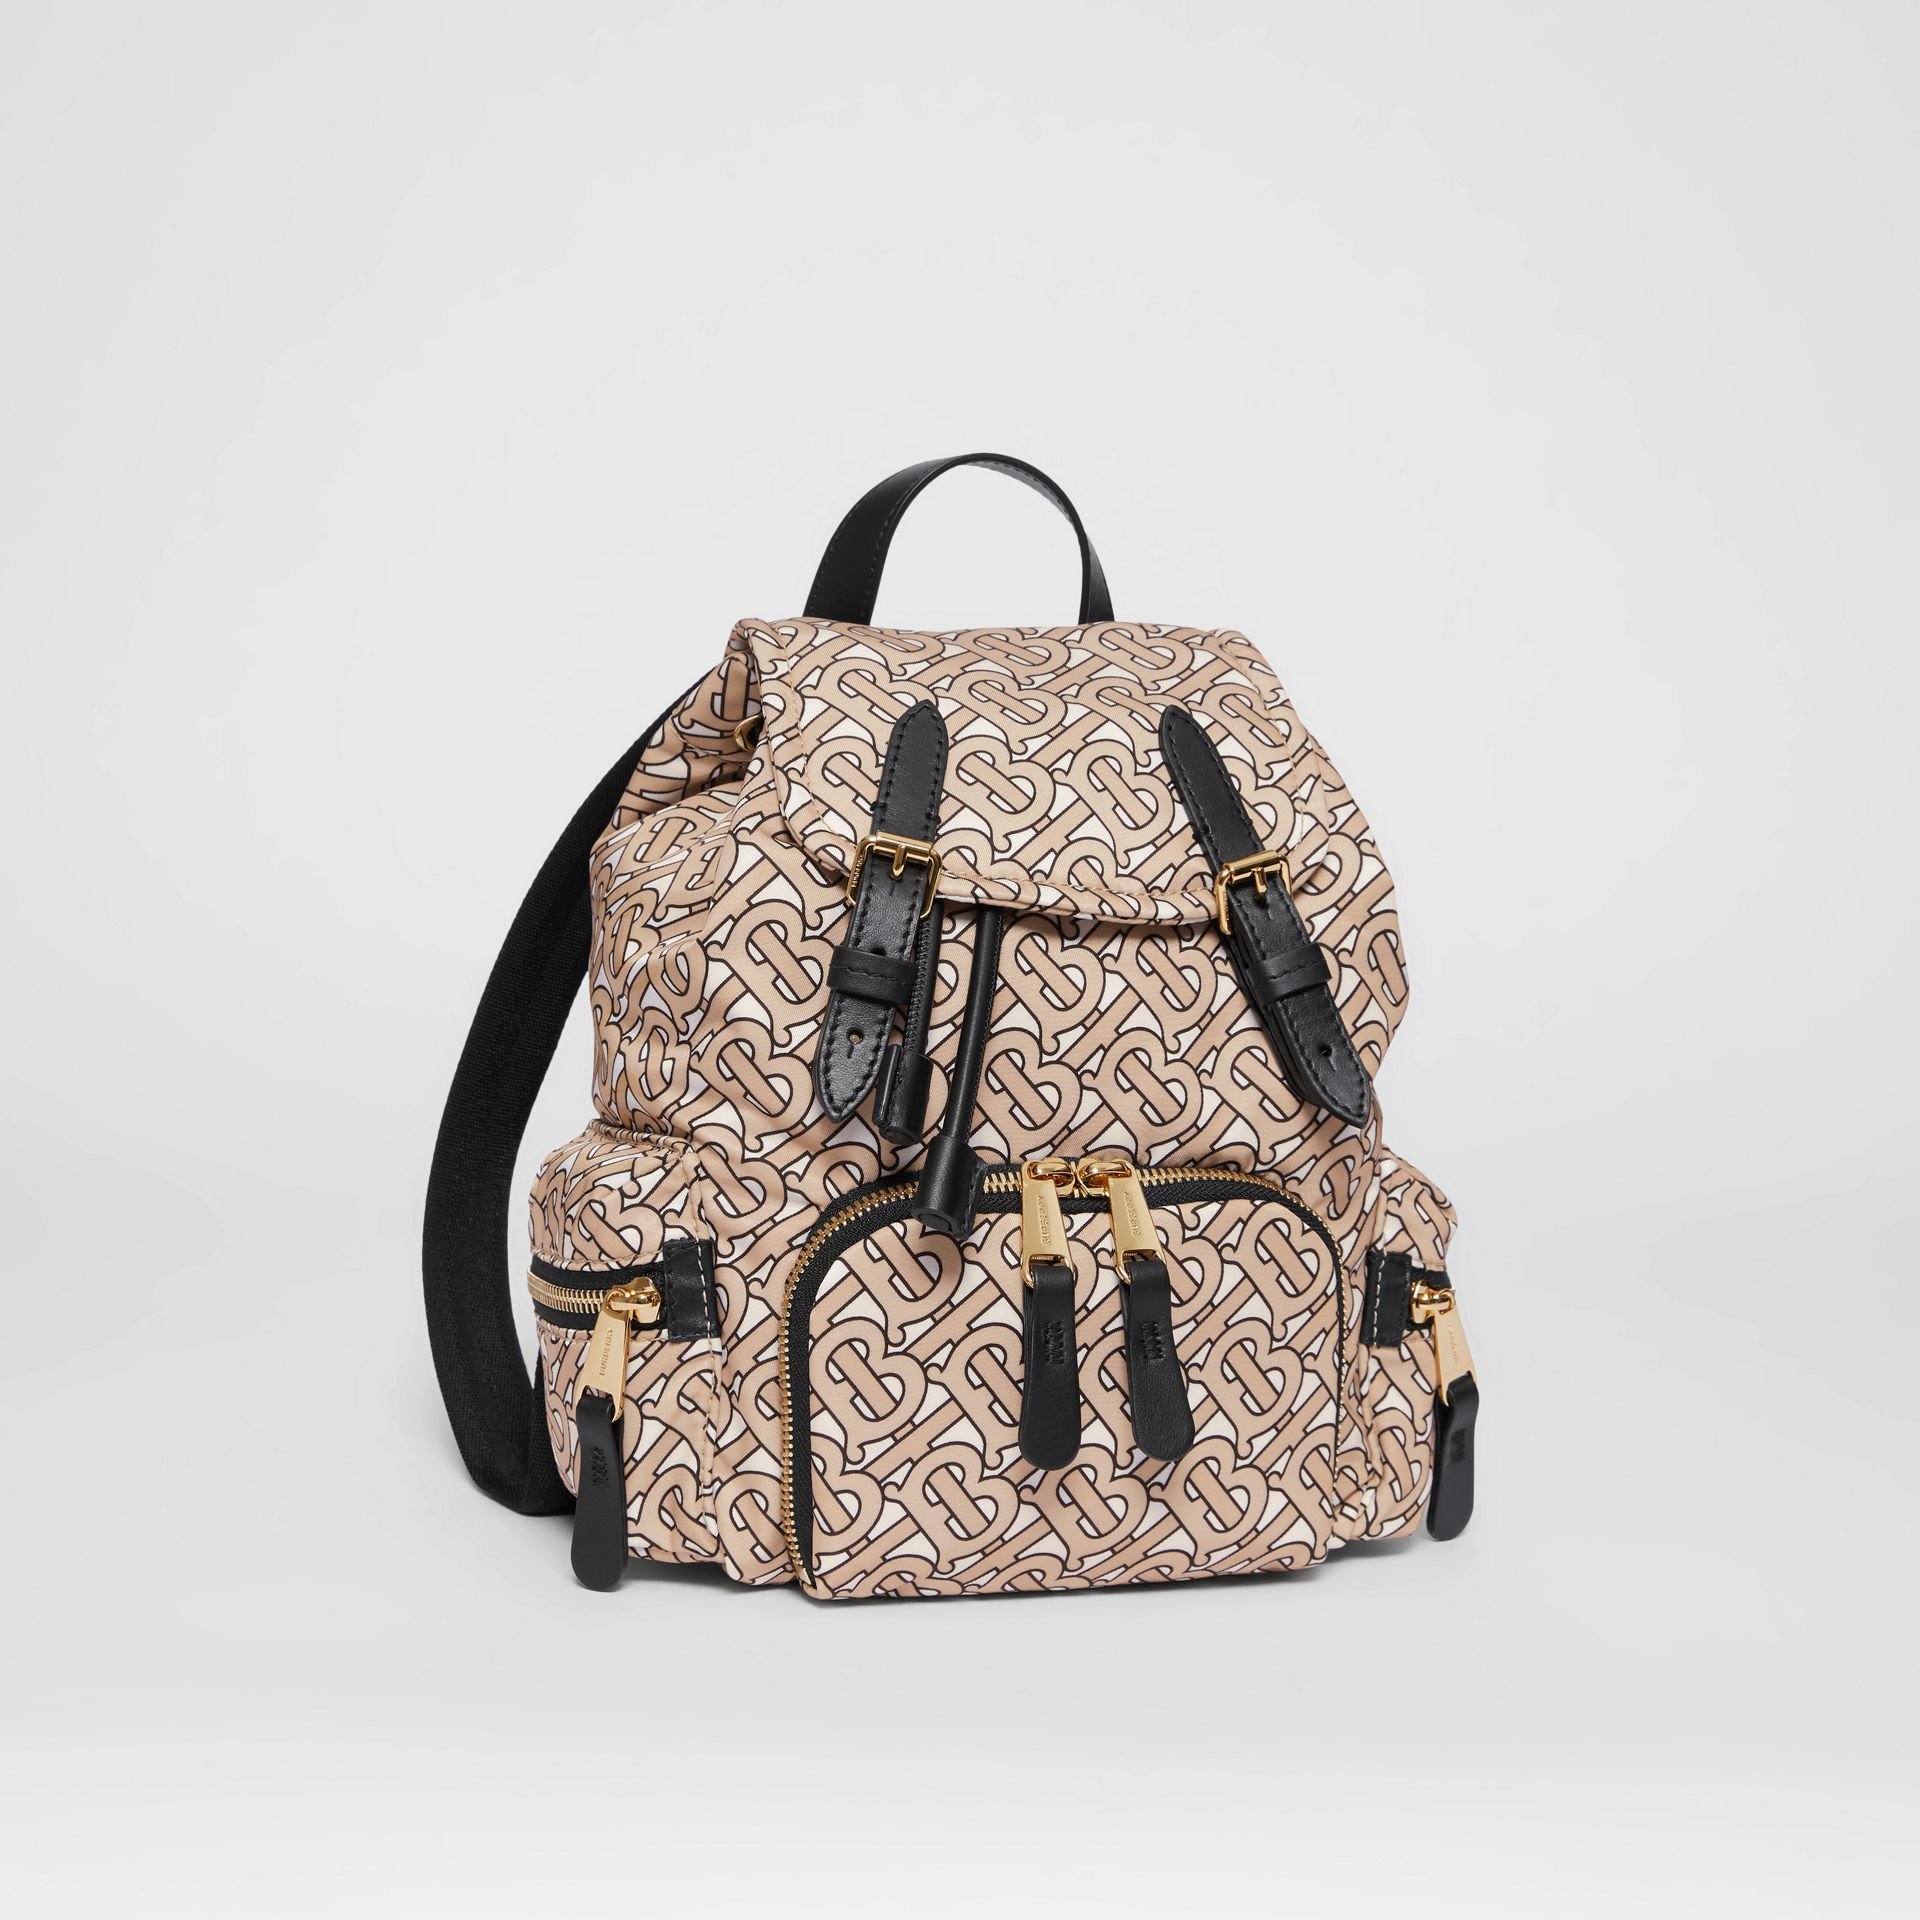 Petit sac The Rucksack en nylon Monogram (Beige) - Femme | Burberry Canada - photo de la galerie 6